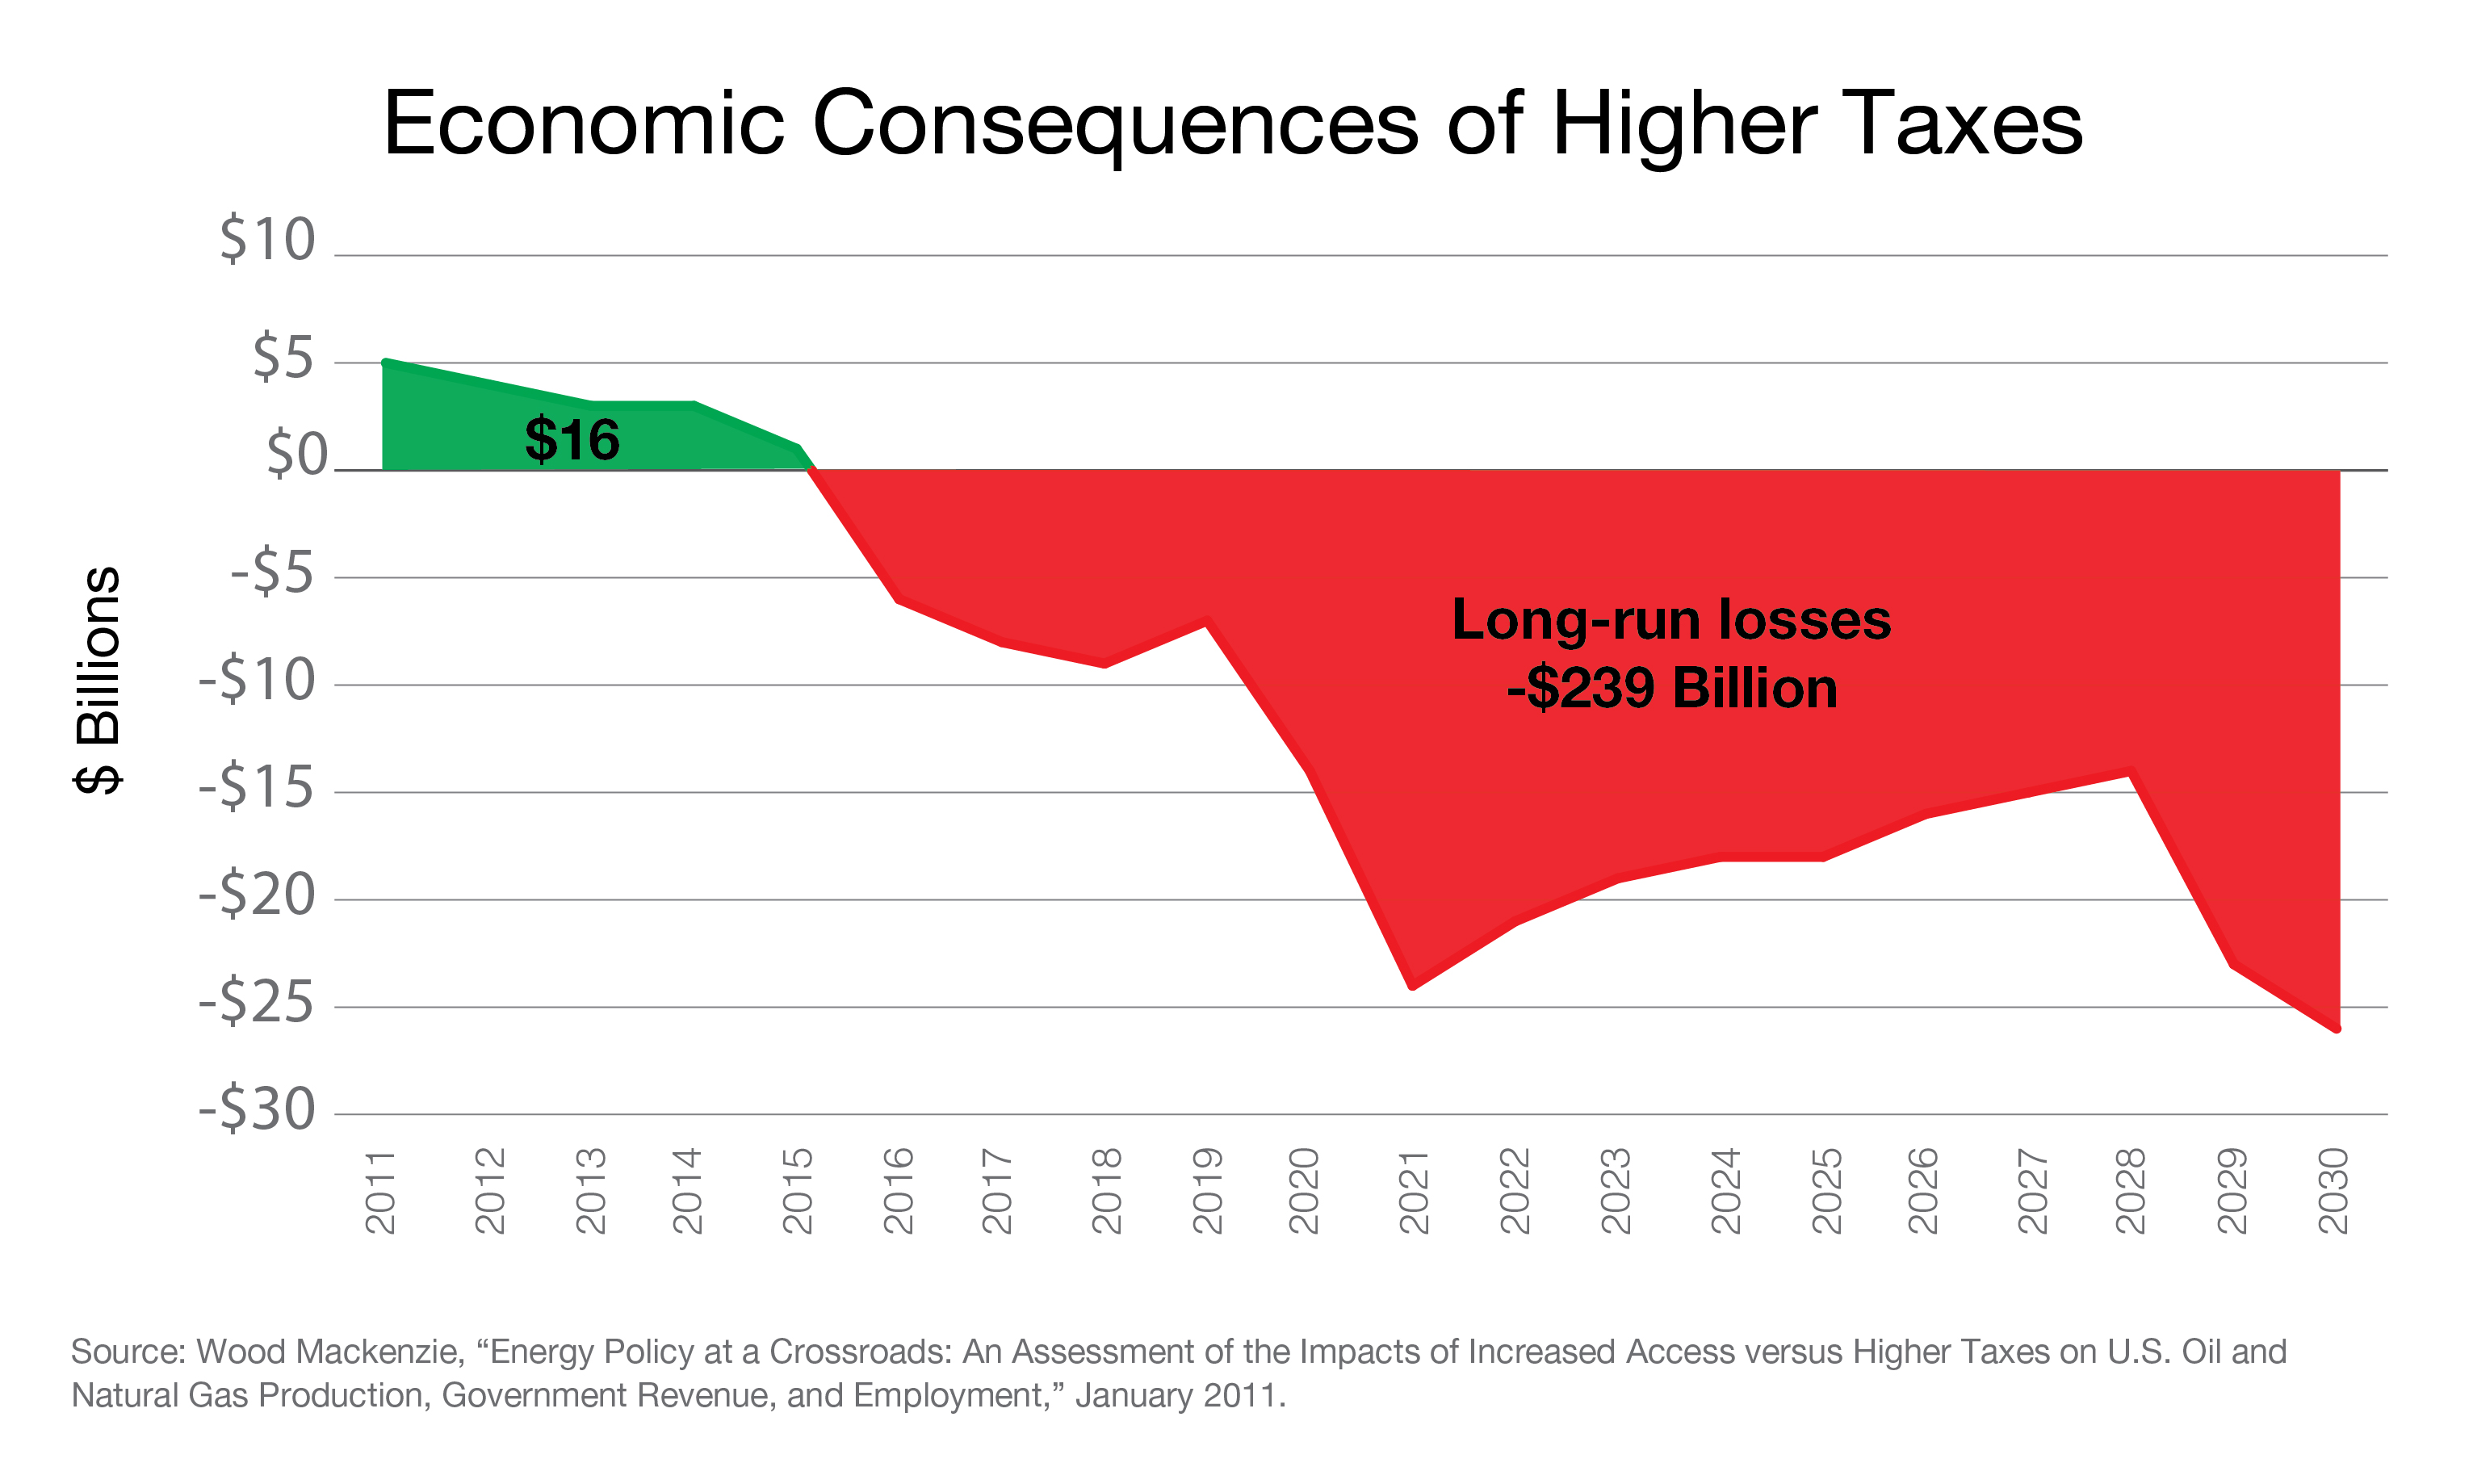 Economic Consequences of Higher Taxes